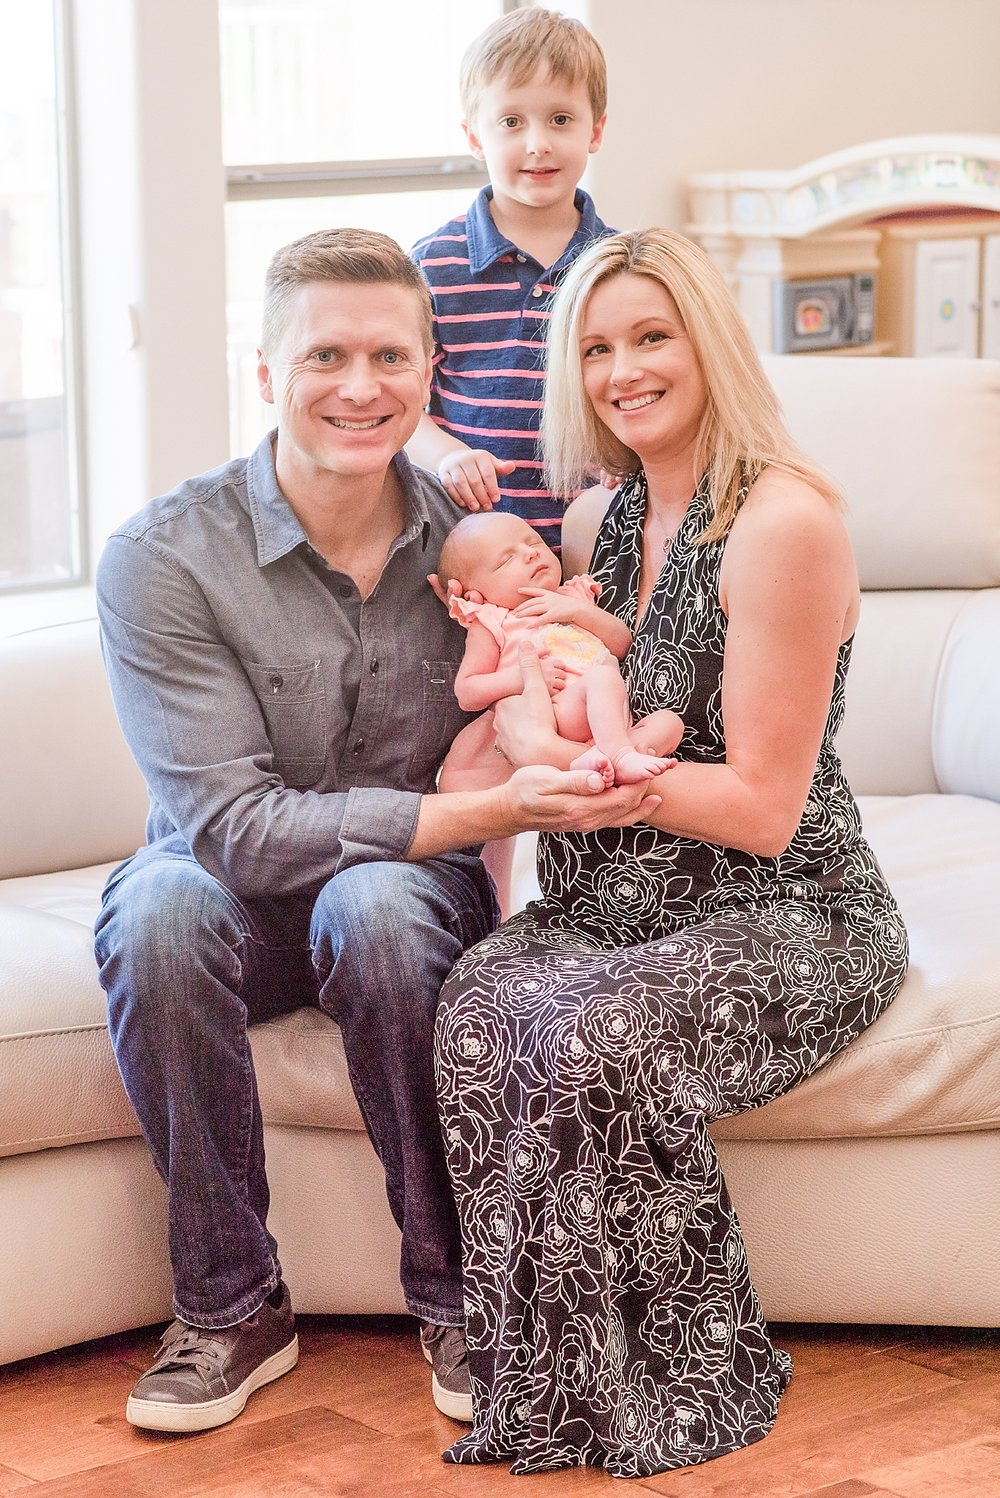 Mihlik family lifestyle, family, and newborn photo session at their home in Scottsdale, Arizona. Photography by Jade Min Photography.